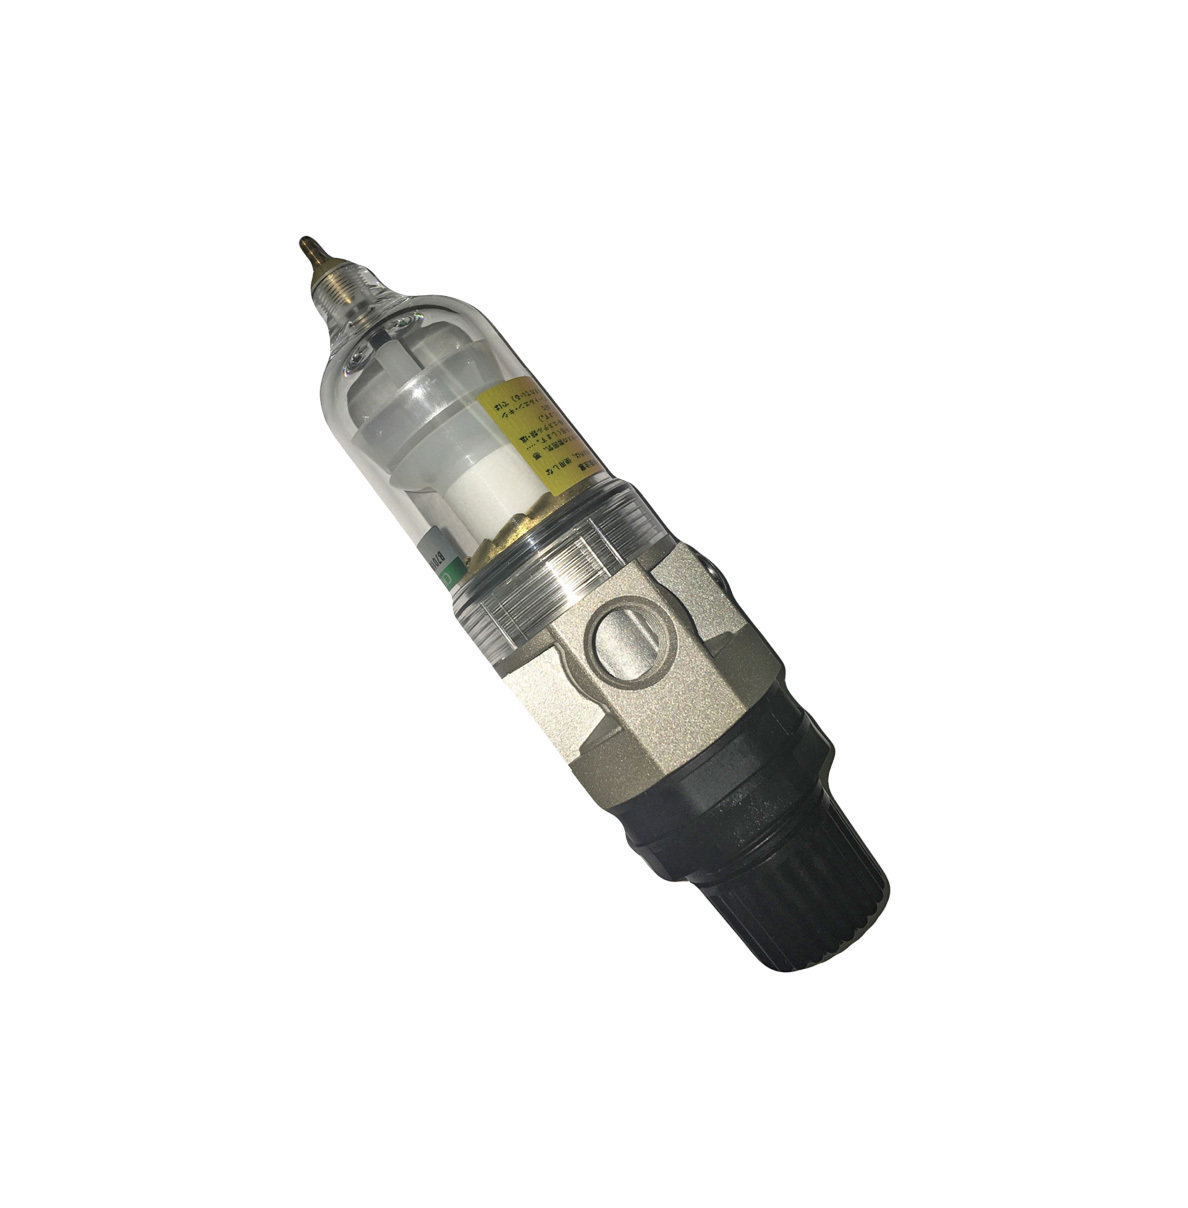 Air Filter/Regulator for Jelenko Mixers